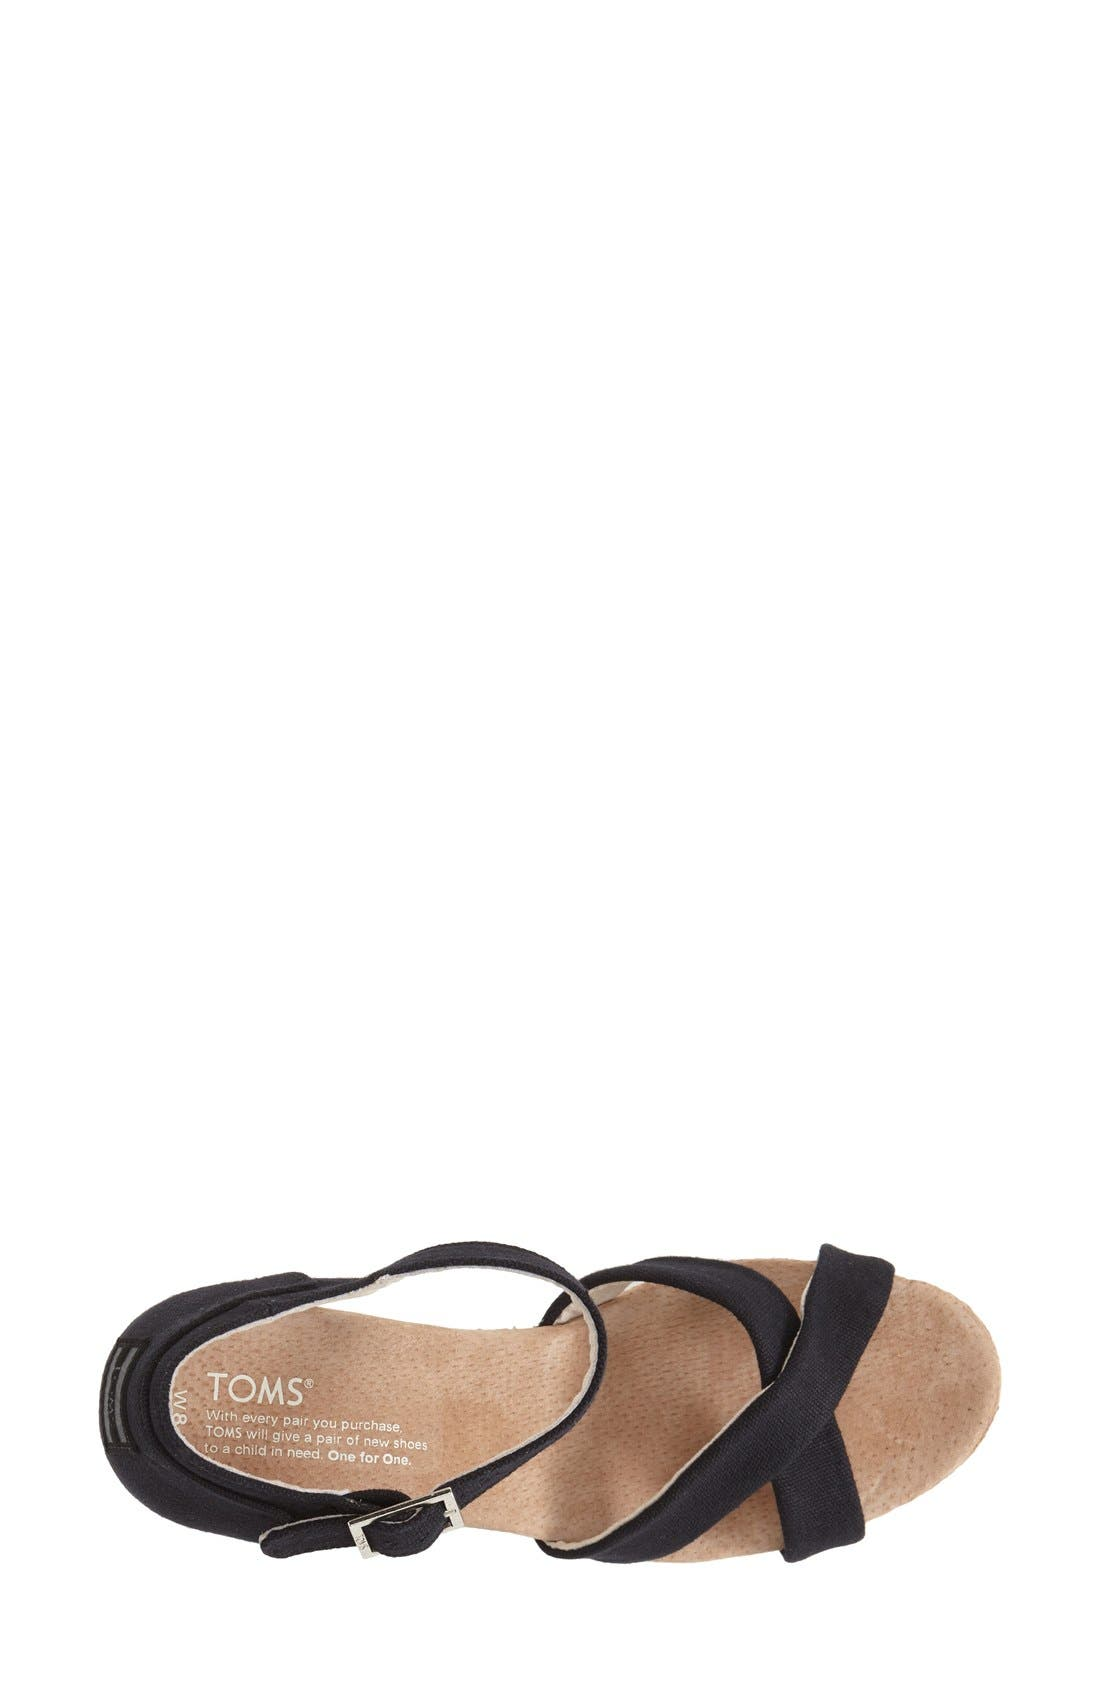 Alternate Image 3  - TOMS Canvas Ankle Strap Wedge Sandal (Women)